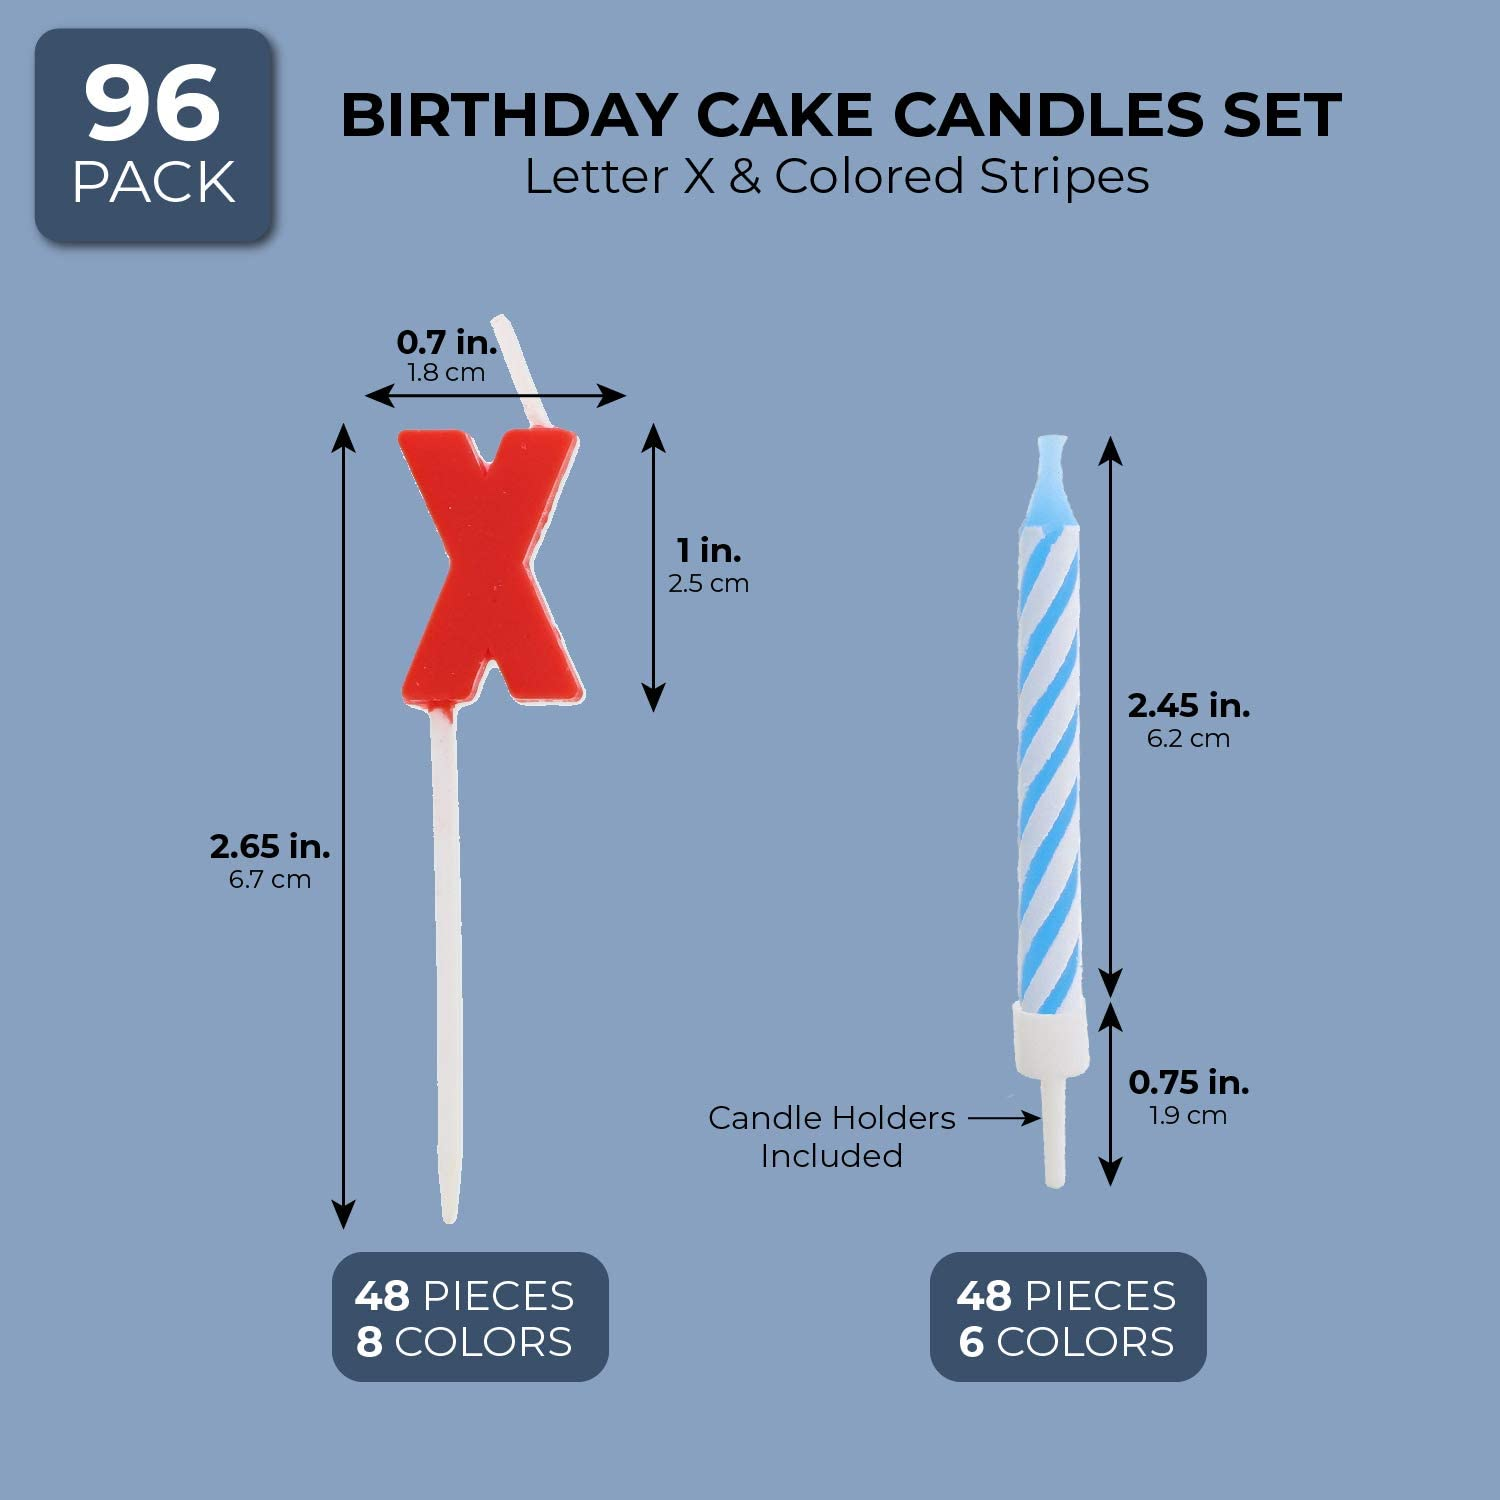 96 Pack Letter X Birthday Cake Candles Set with Holders